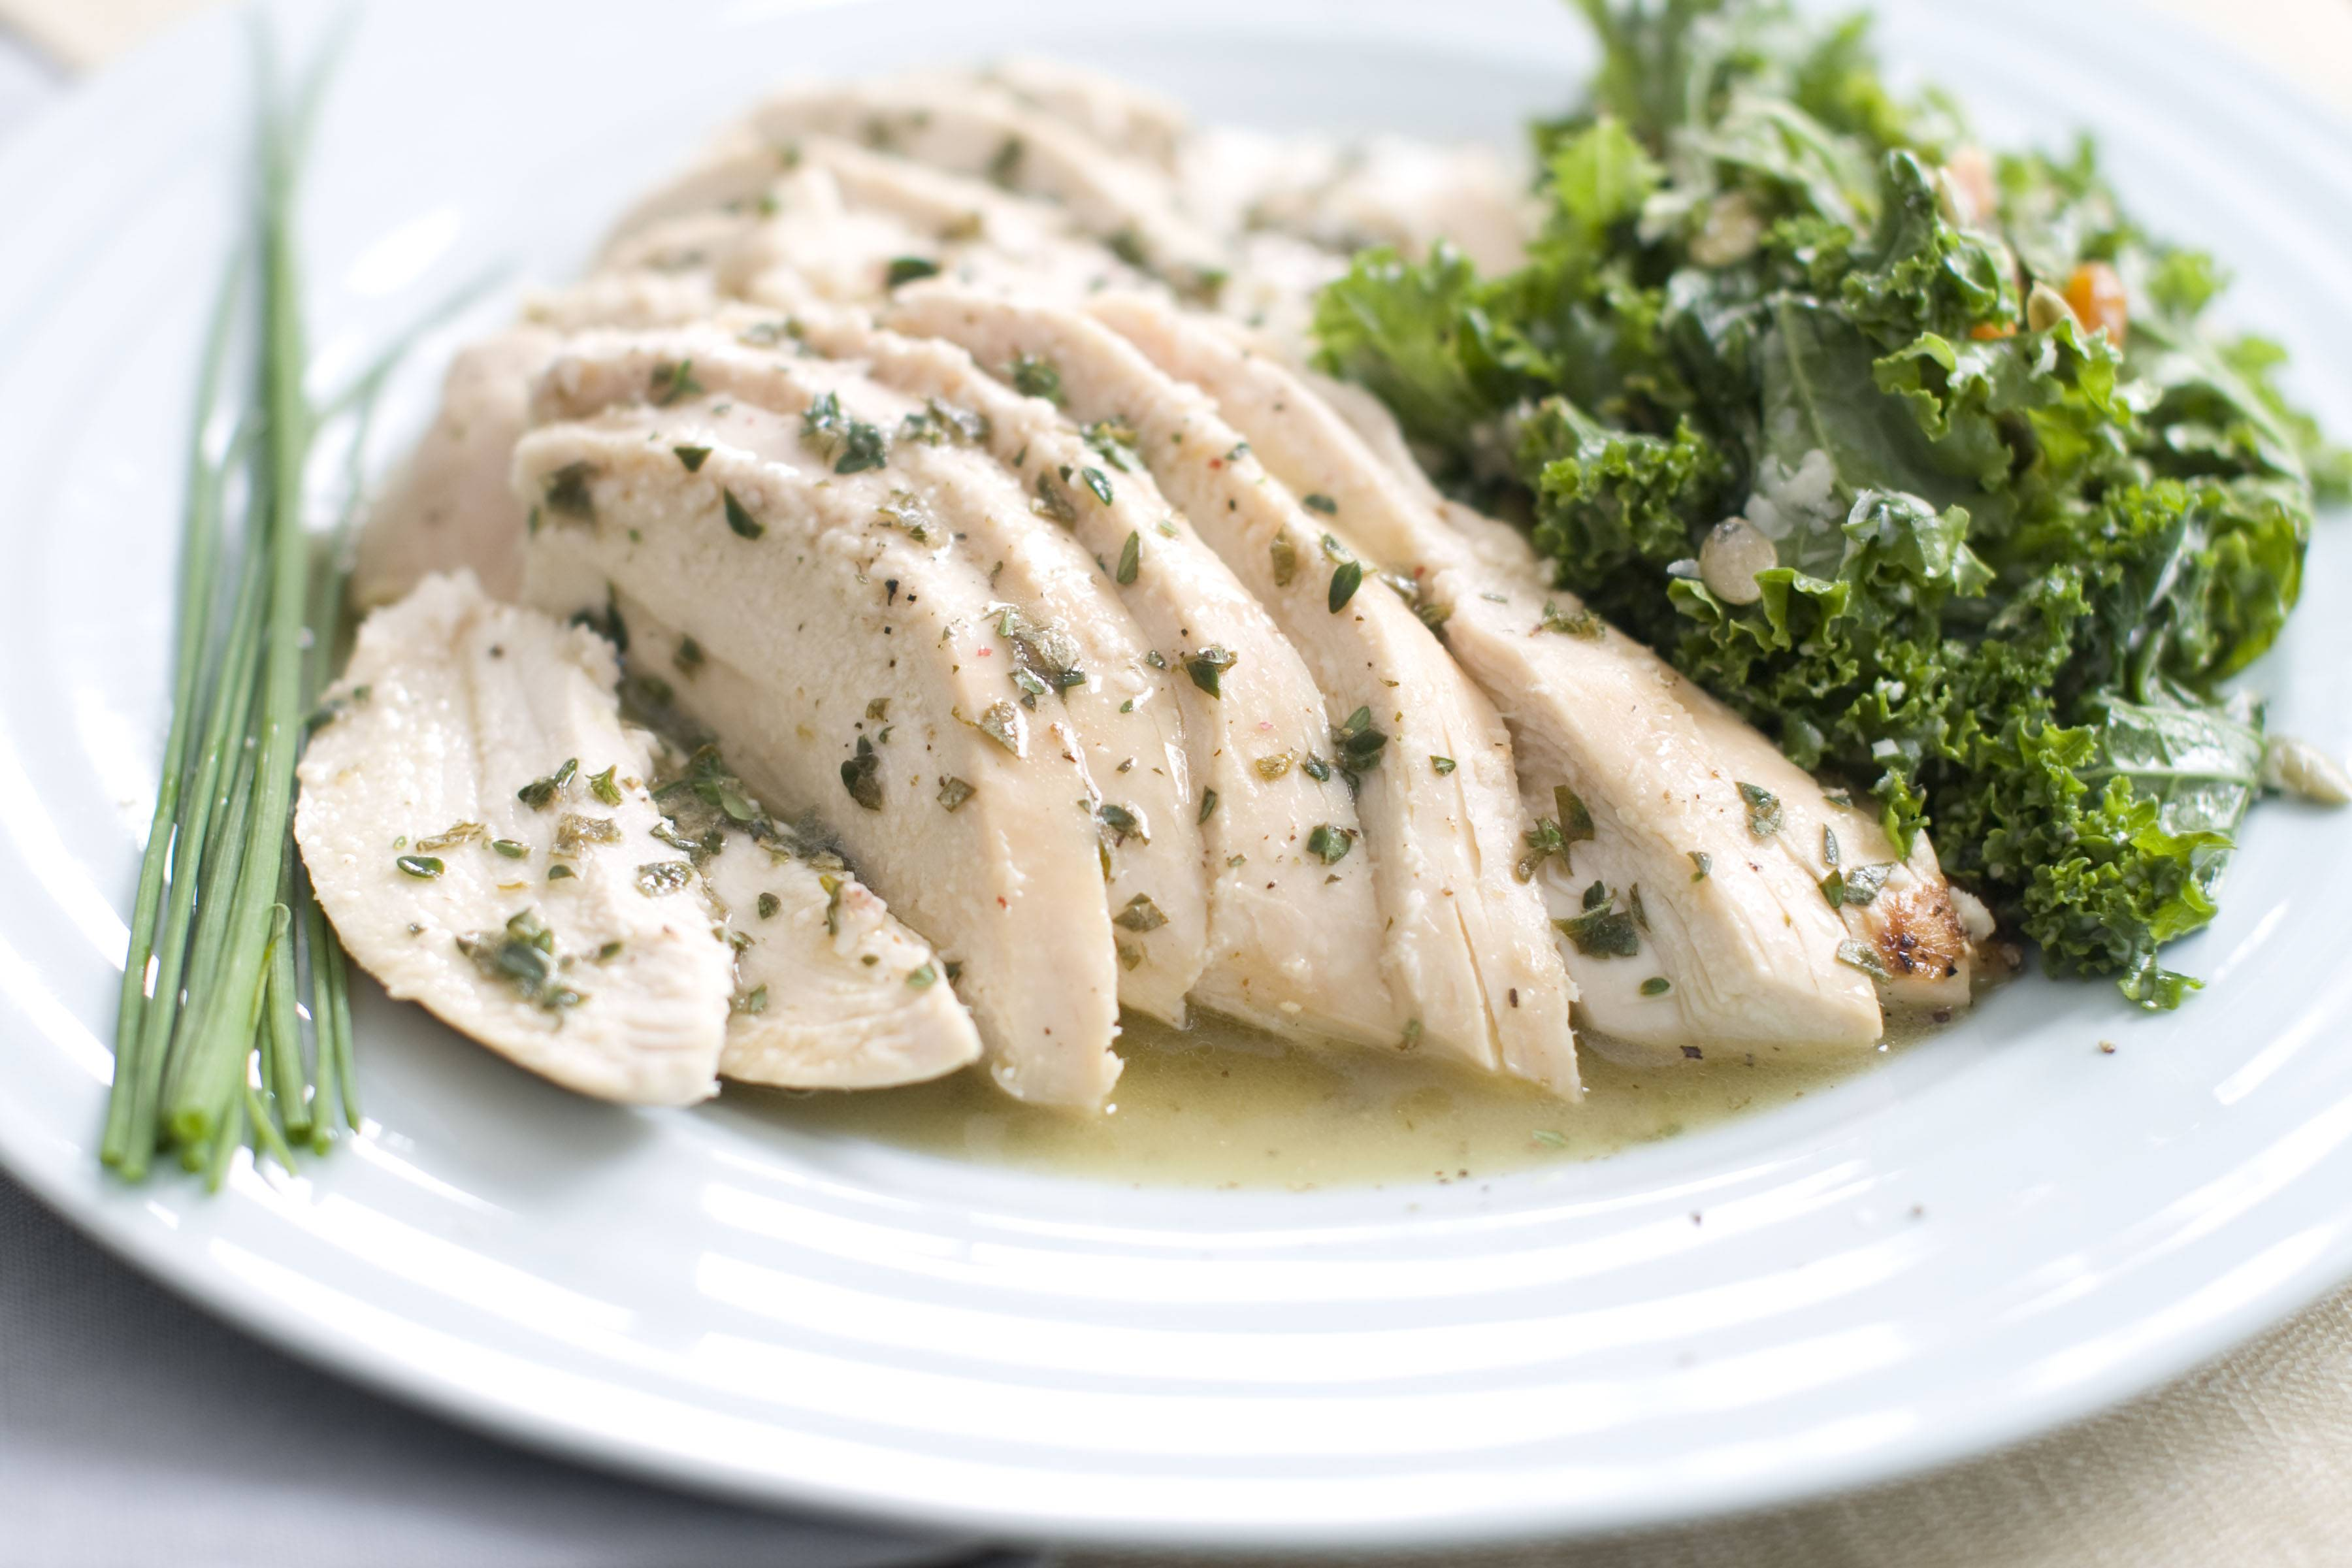 Roasted chicken with fresh herb sauce is a simple, yet elegant entree for spring feasts.